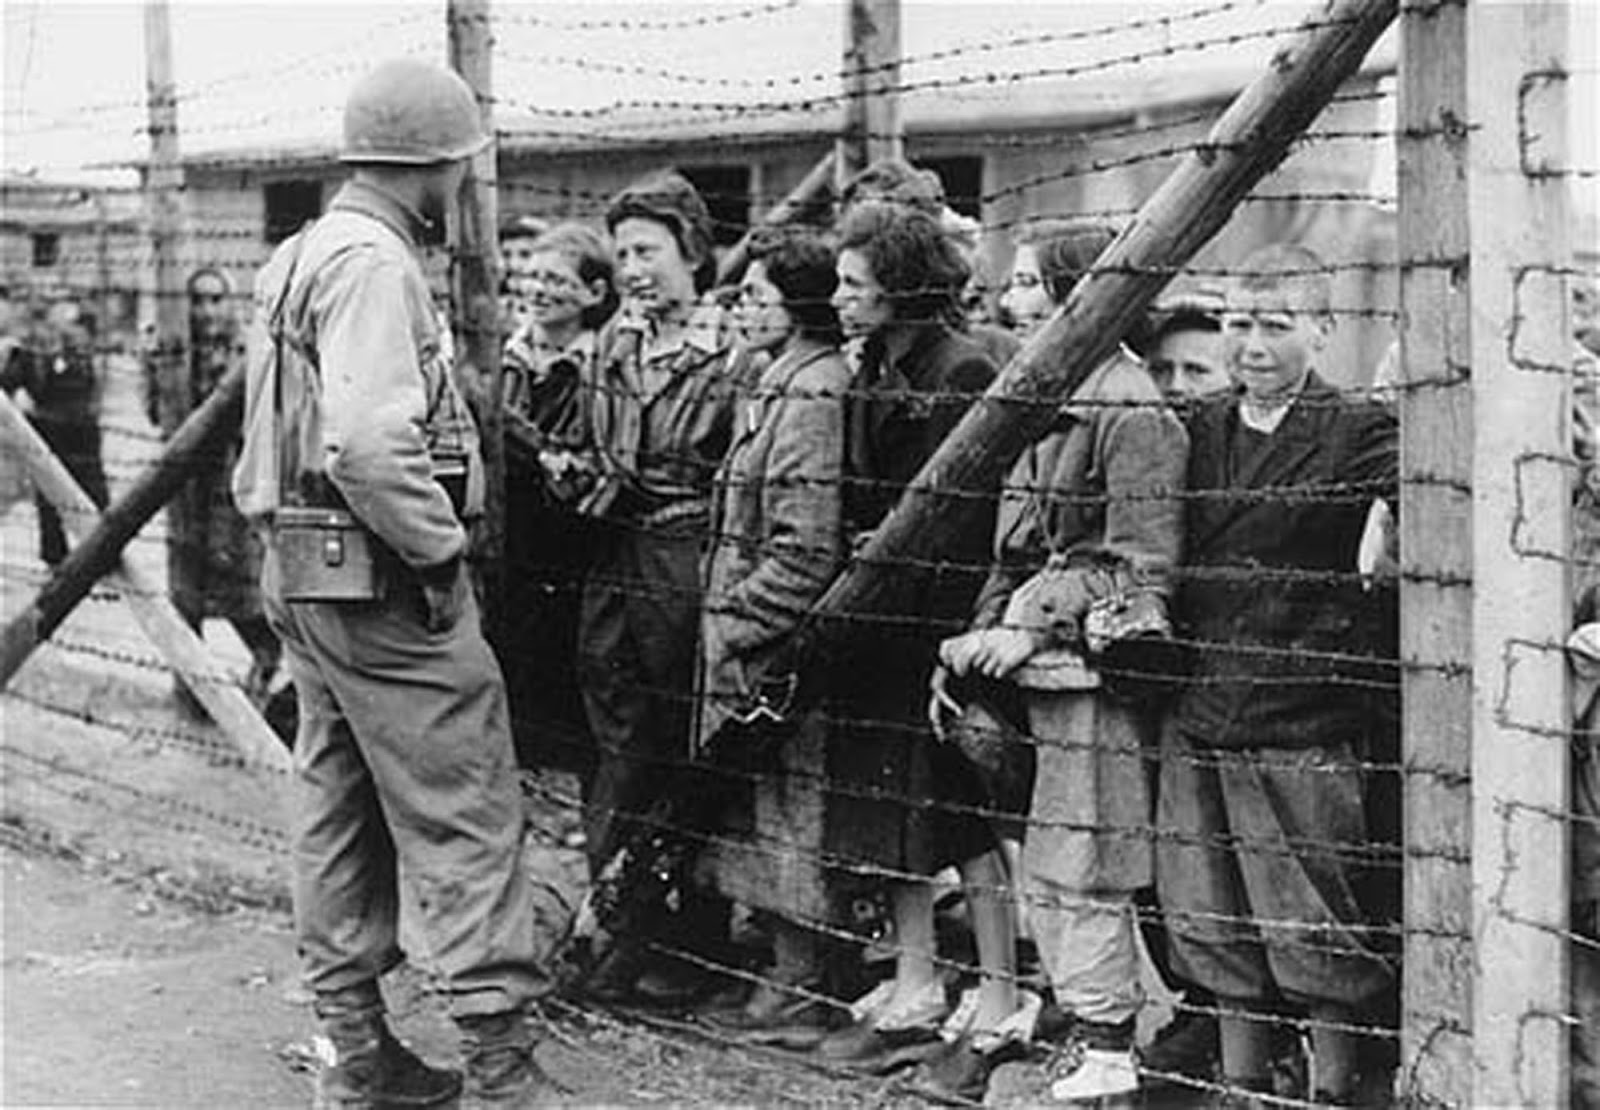 genocide ww2 holocaust - photo #4